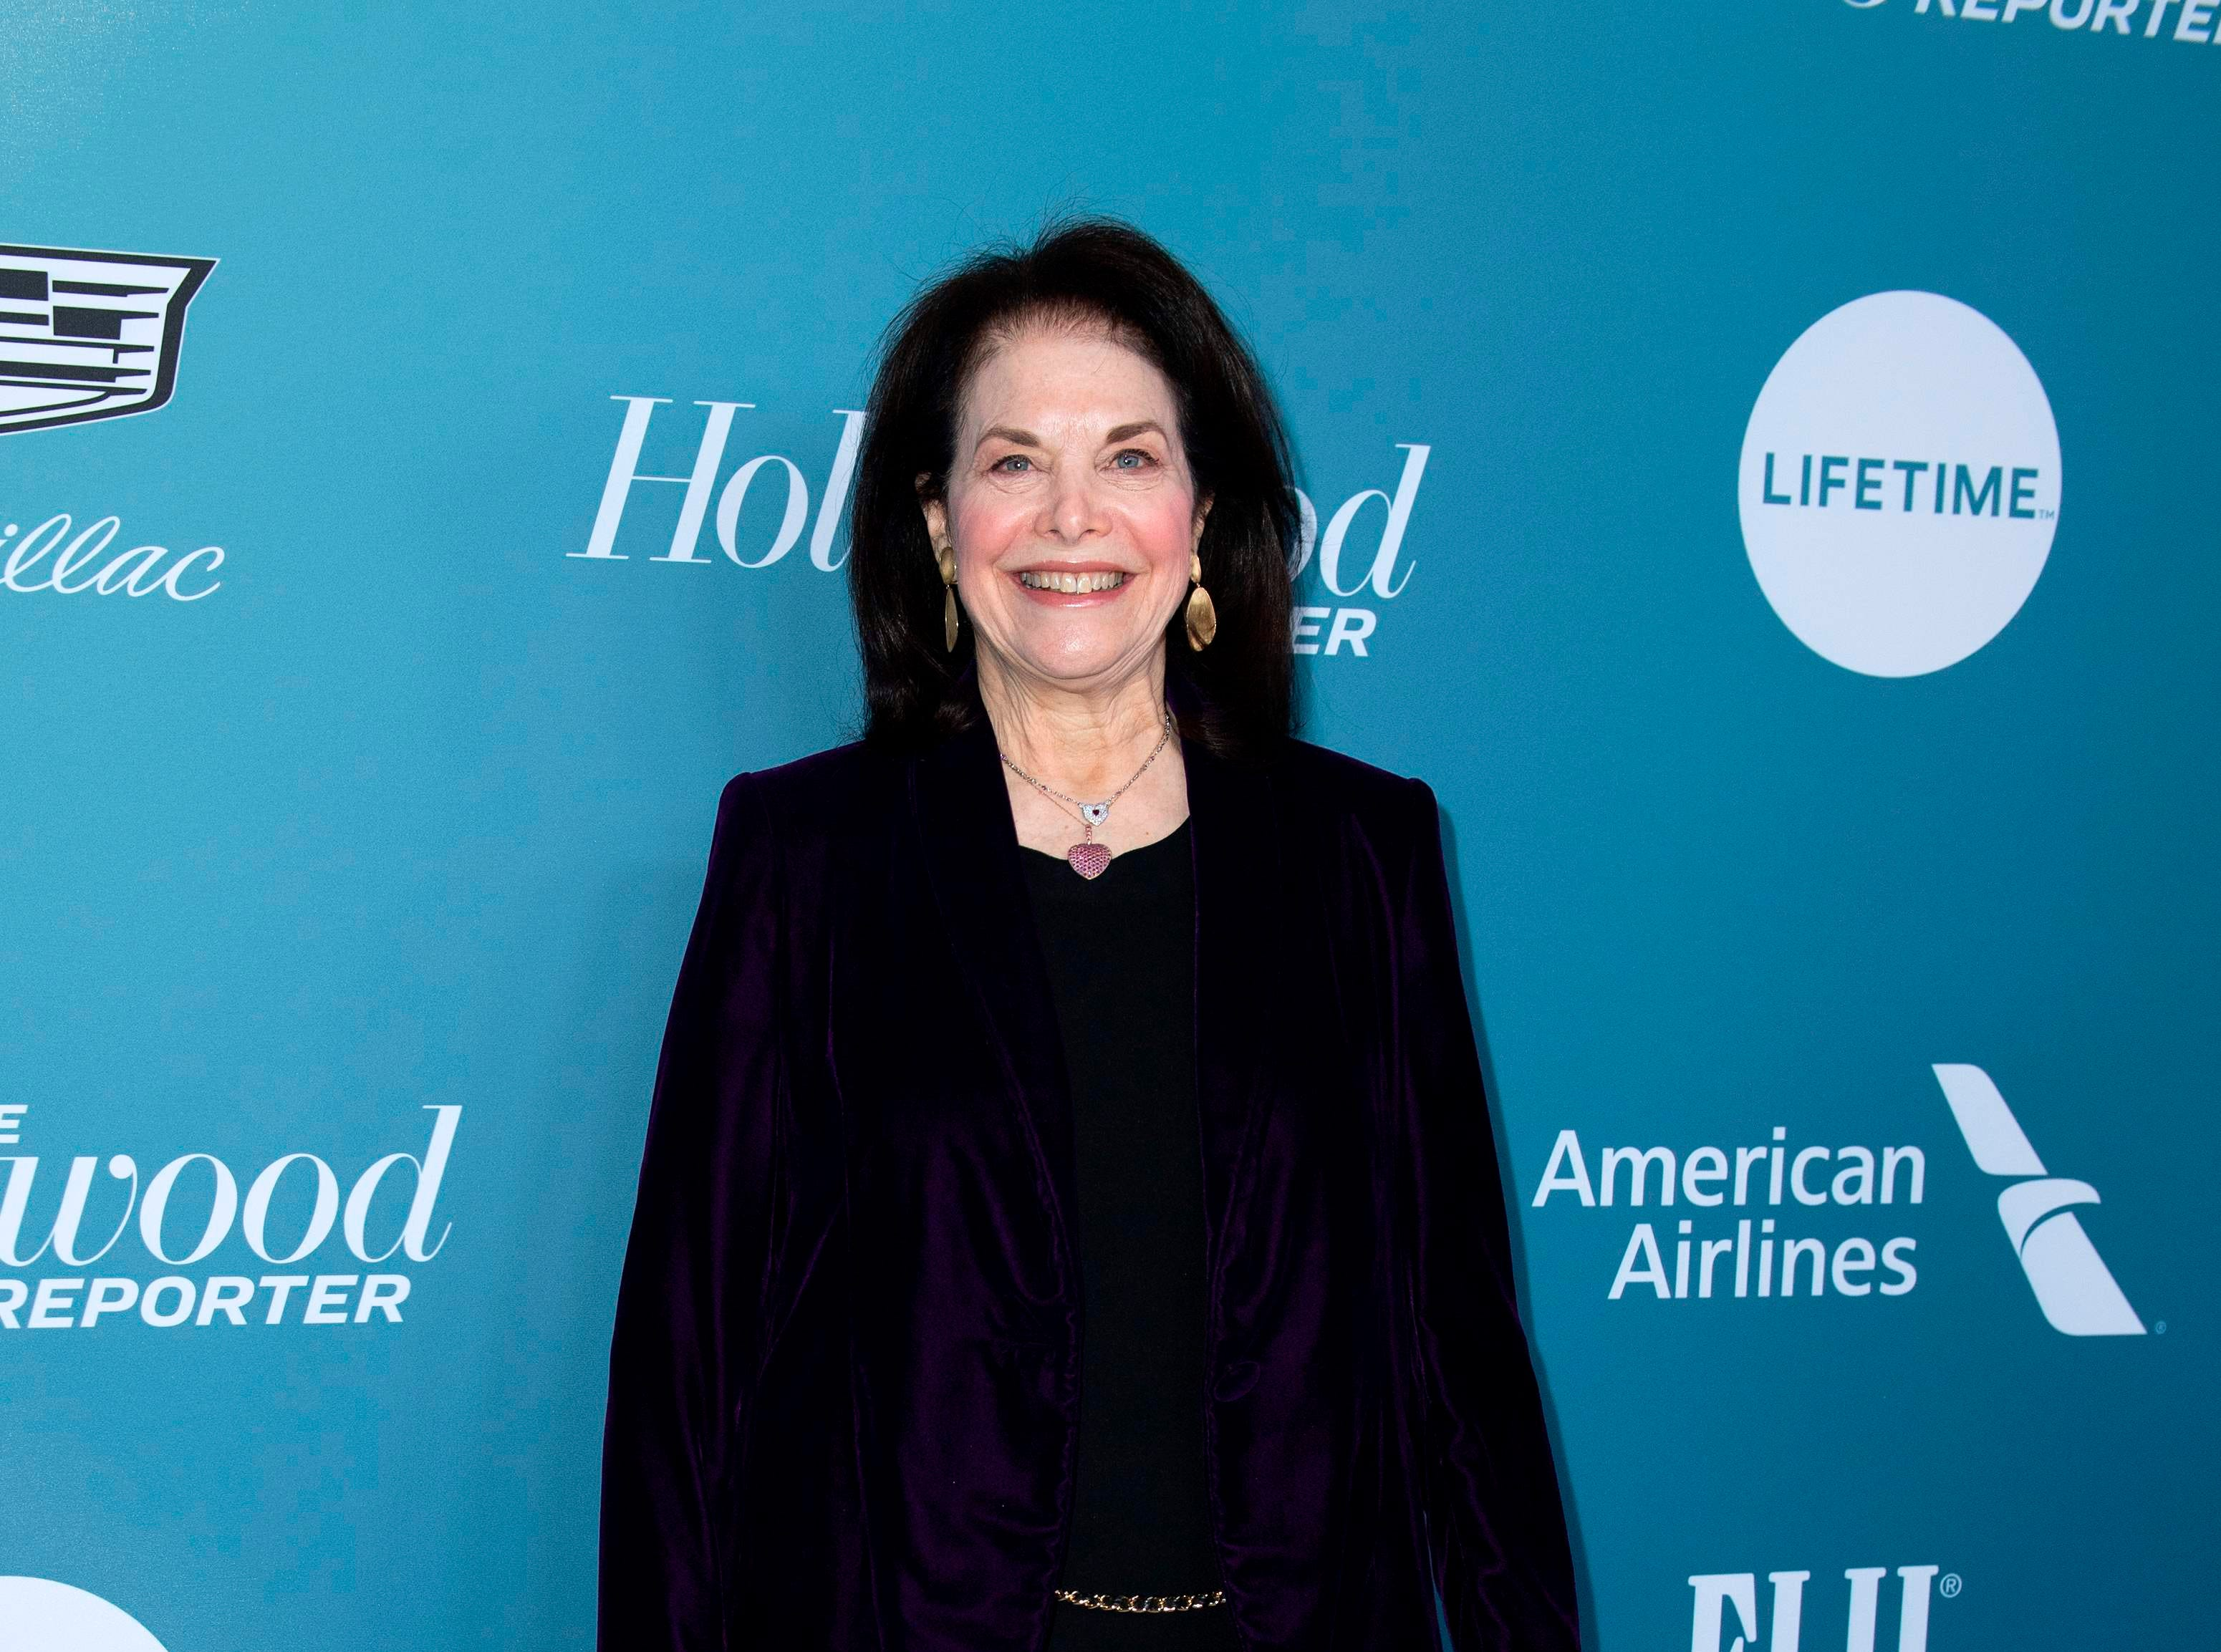 Actress  Sherry Lansing attends The Hollywood Reporter's Power 100 Women In Entertainment at Milk Studios, in Los Angeles, California, on December 5, 2018. (Photo by VALERIE MACON / AFP)VALERIE MACON/AFP/Getty Images ORG XMIT: The Holly ORIG FILE ID: AFP_1BD5LG